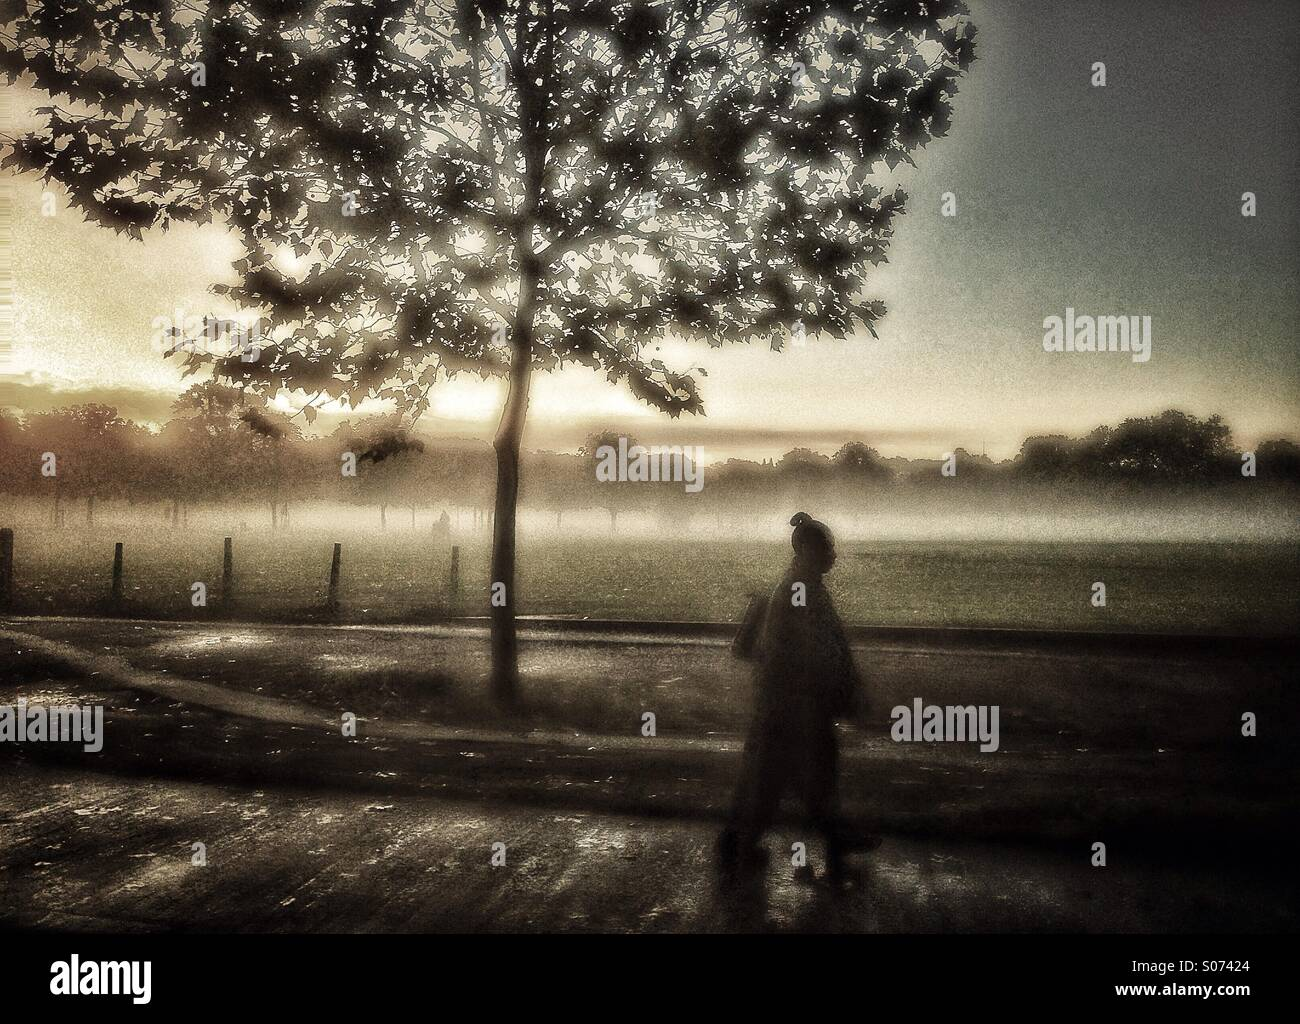 Early_morning_walk_through_the_Park-S074